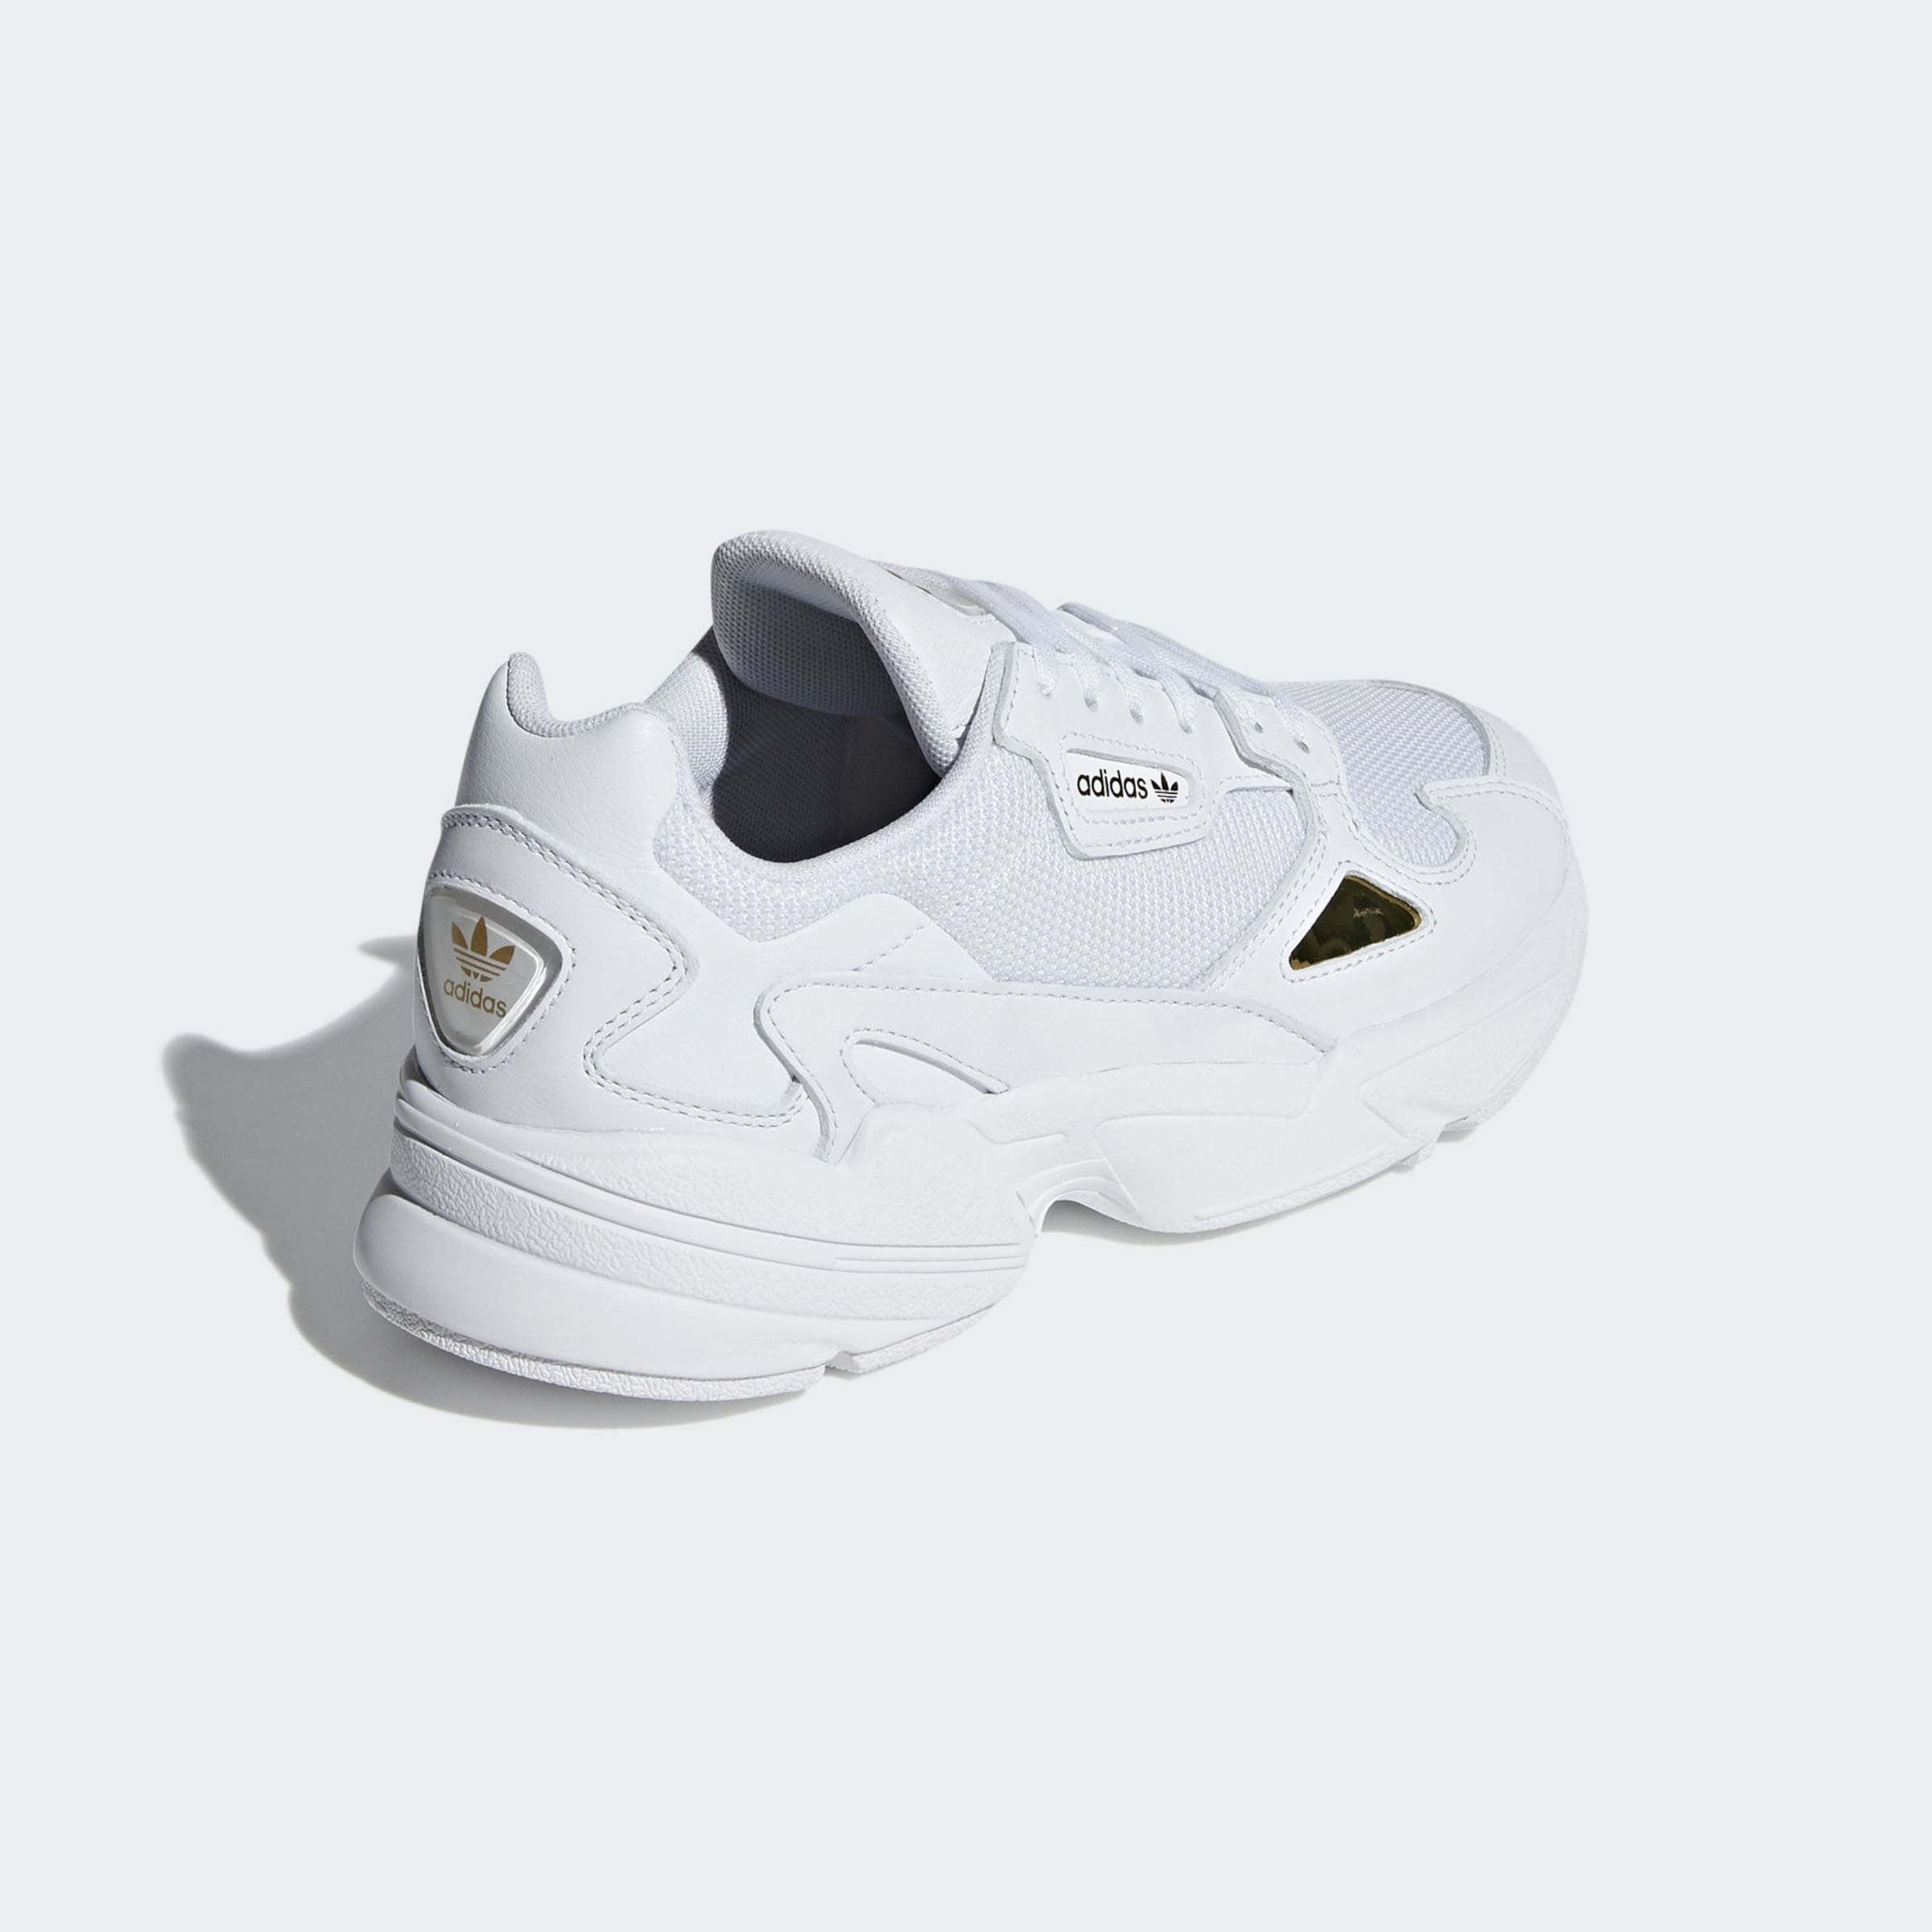 GoldWeiß 'falcon' Sneaker In Originals Adidas MGSzpqVLU